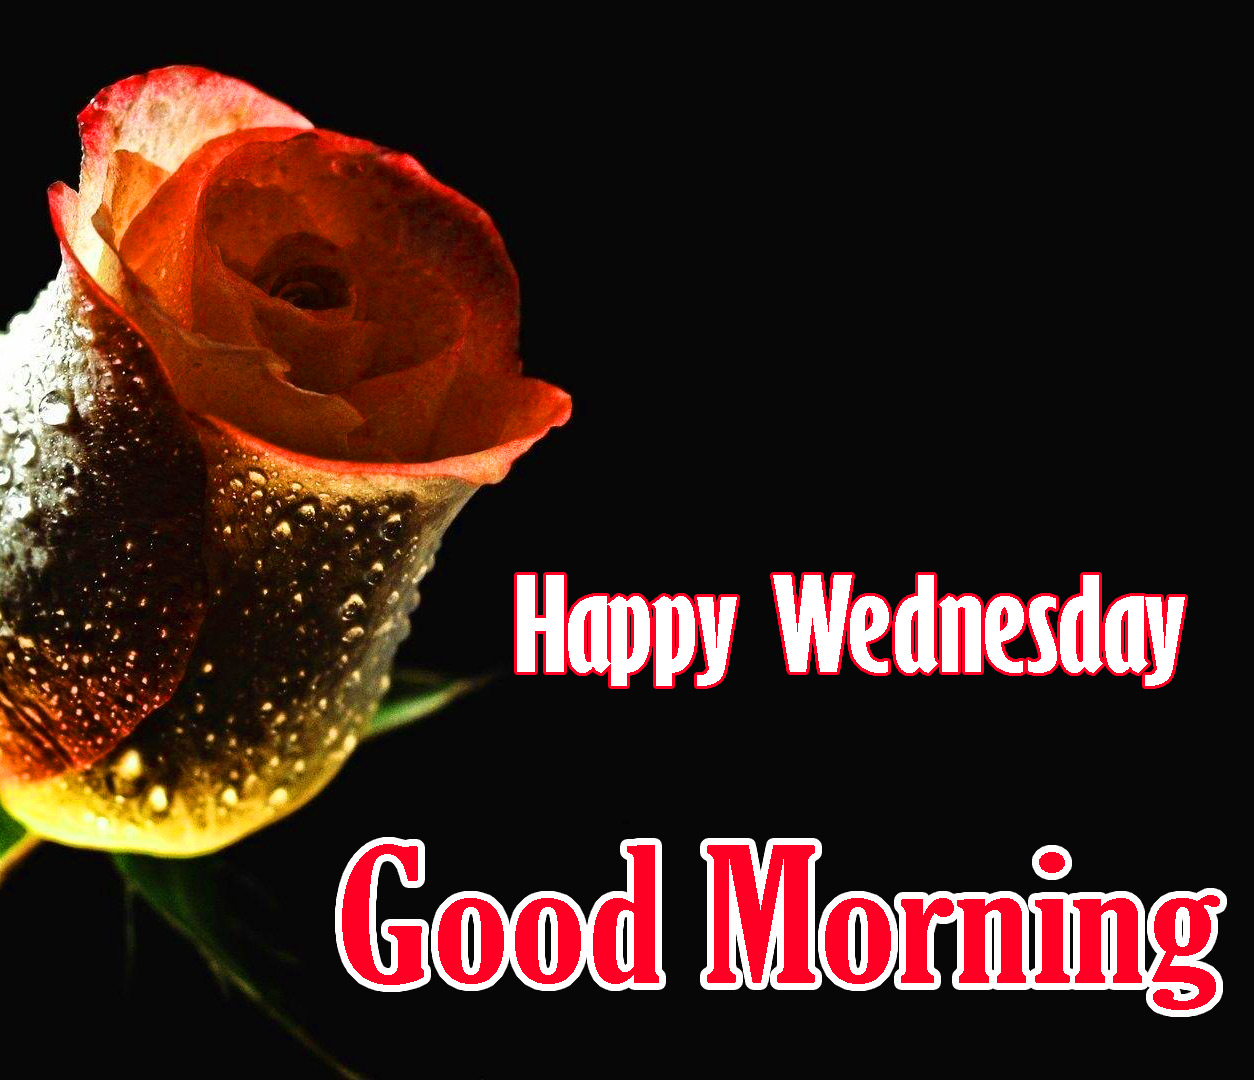 Good Morning Wednesday Images With Red Rose